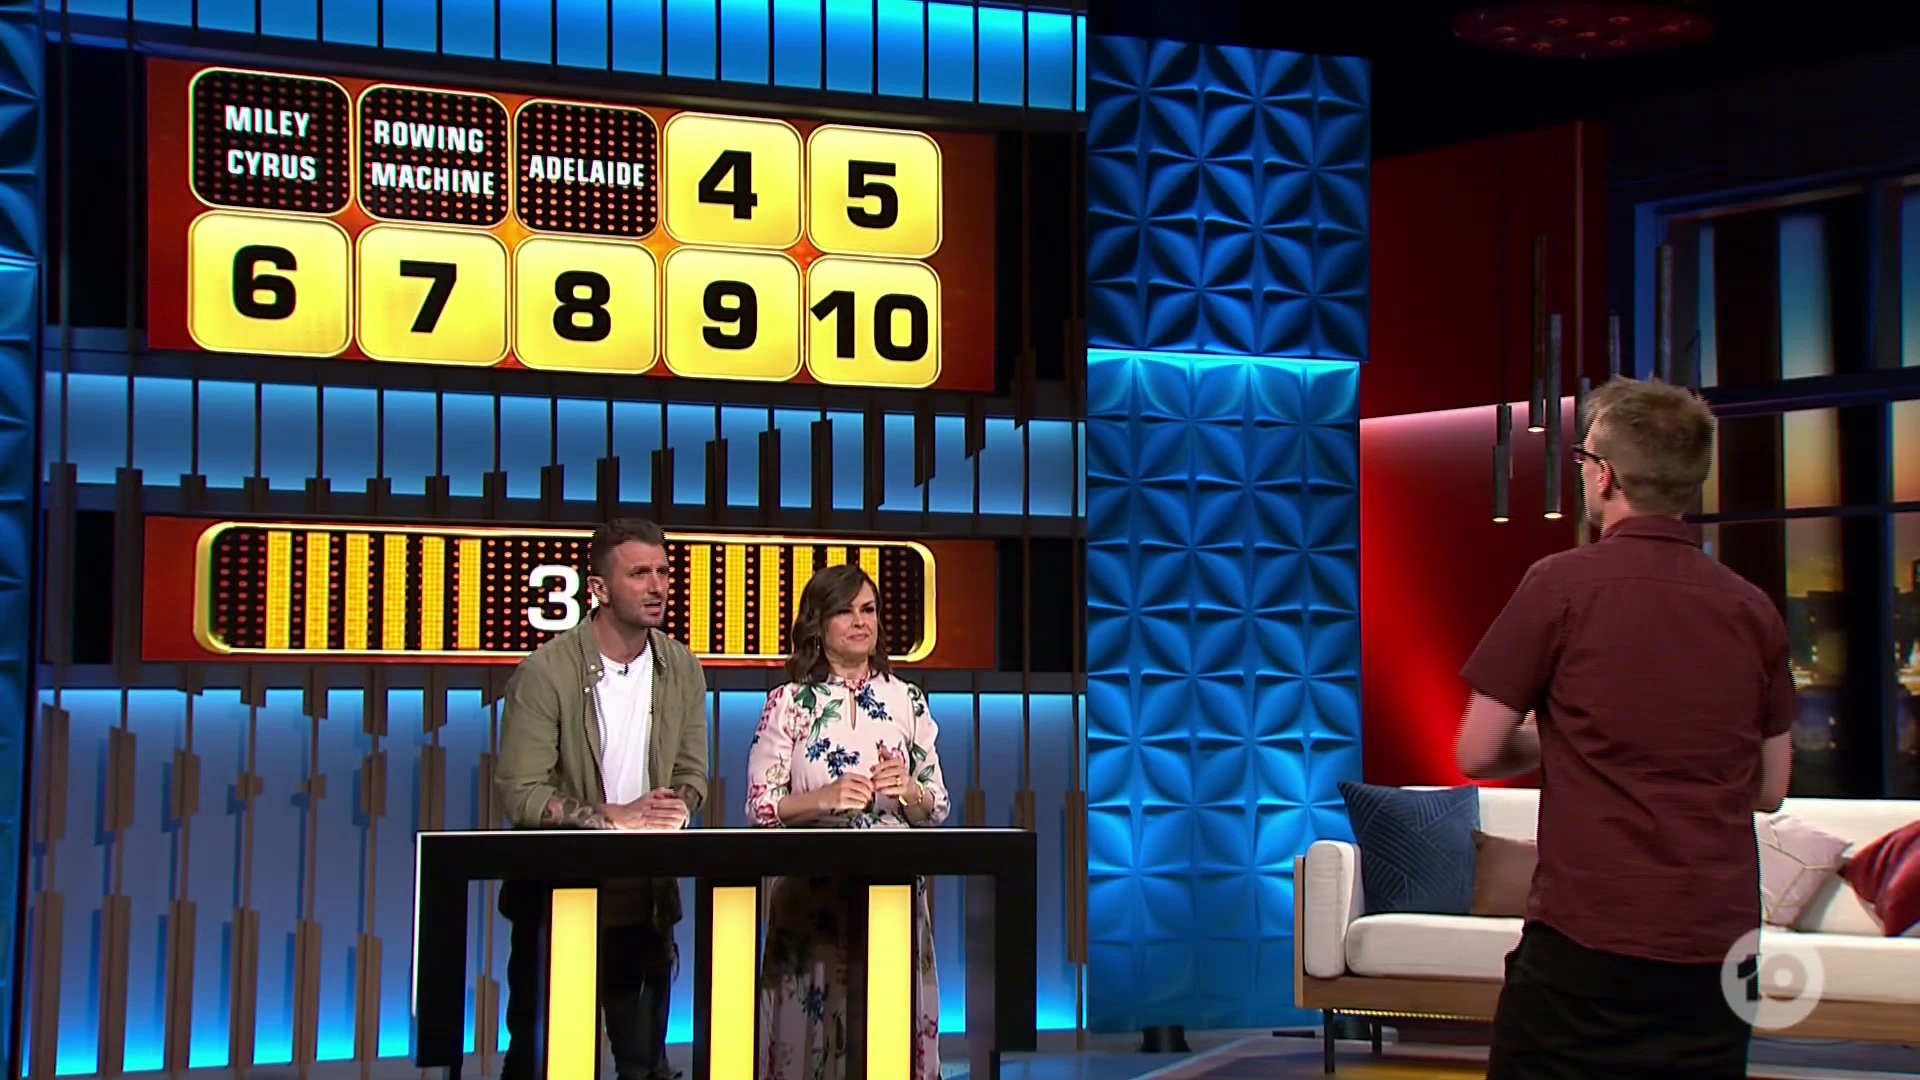 Andrew shocked host Grant Denyer with his precision clues.